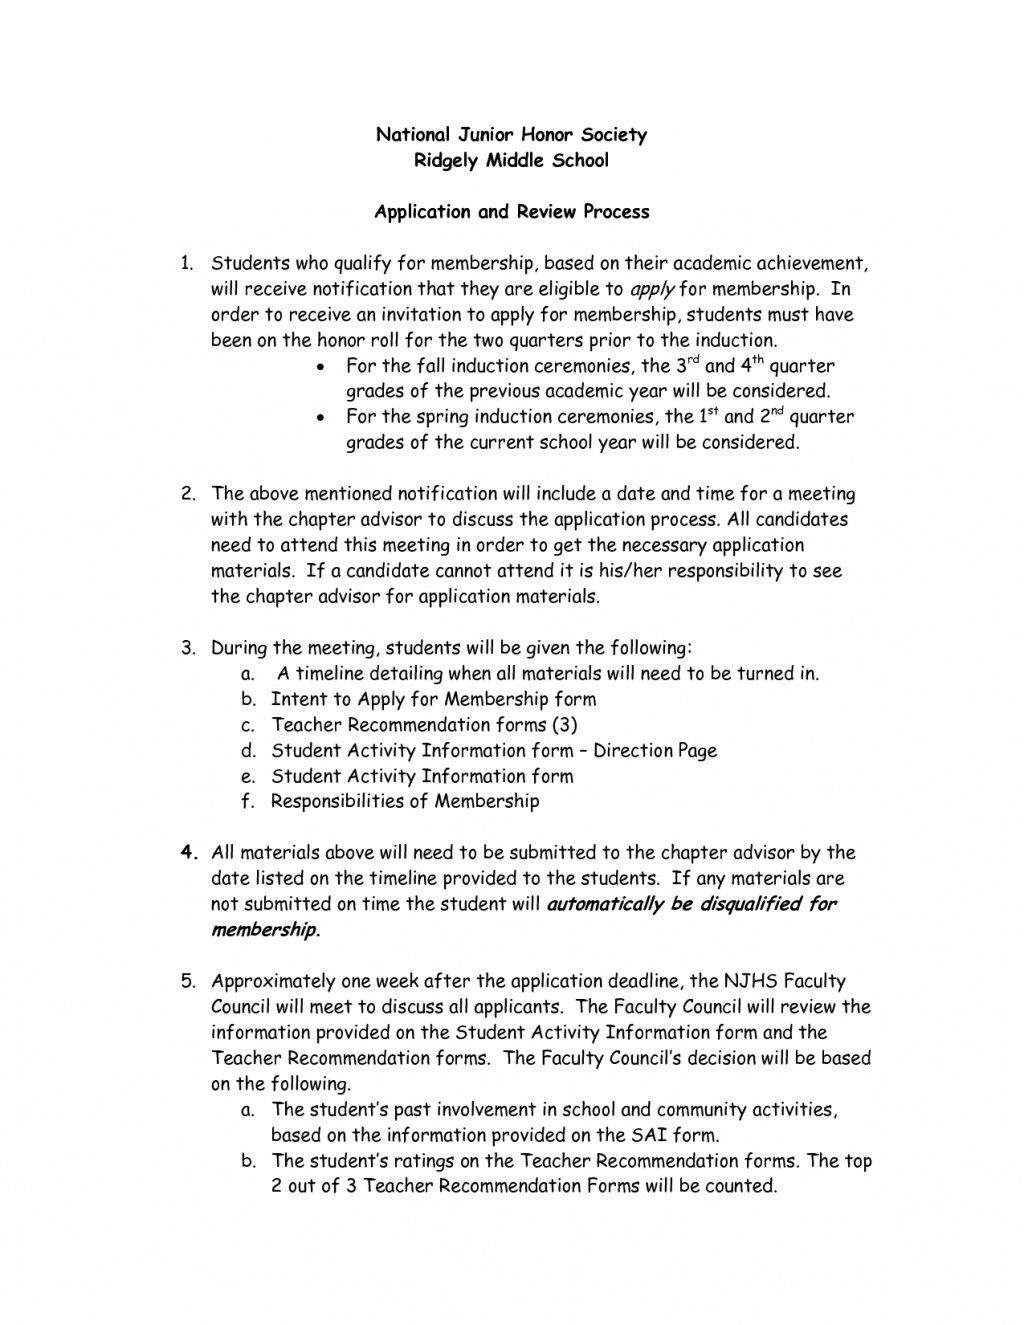 007 Essay Example Njhs Conclusion National Honors Society Examples Of Honor Junior Unique Large